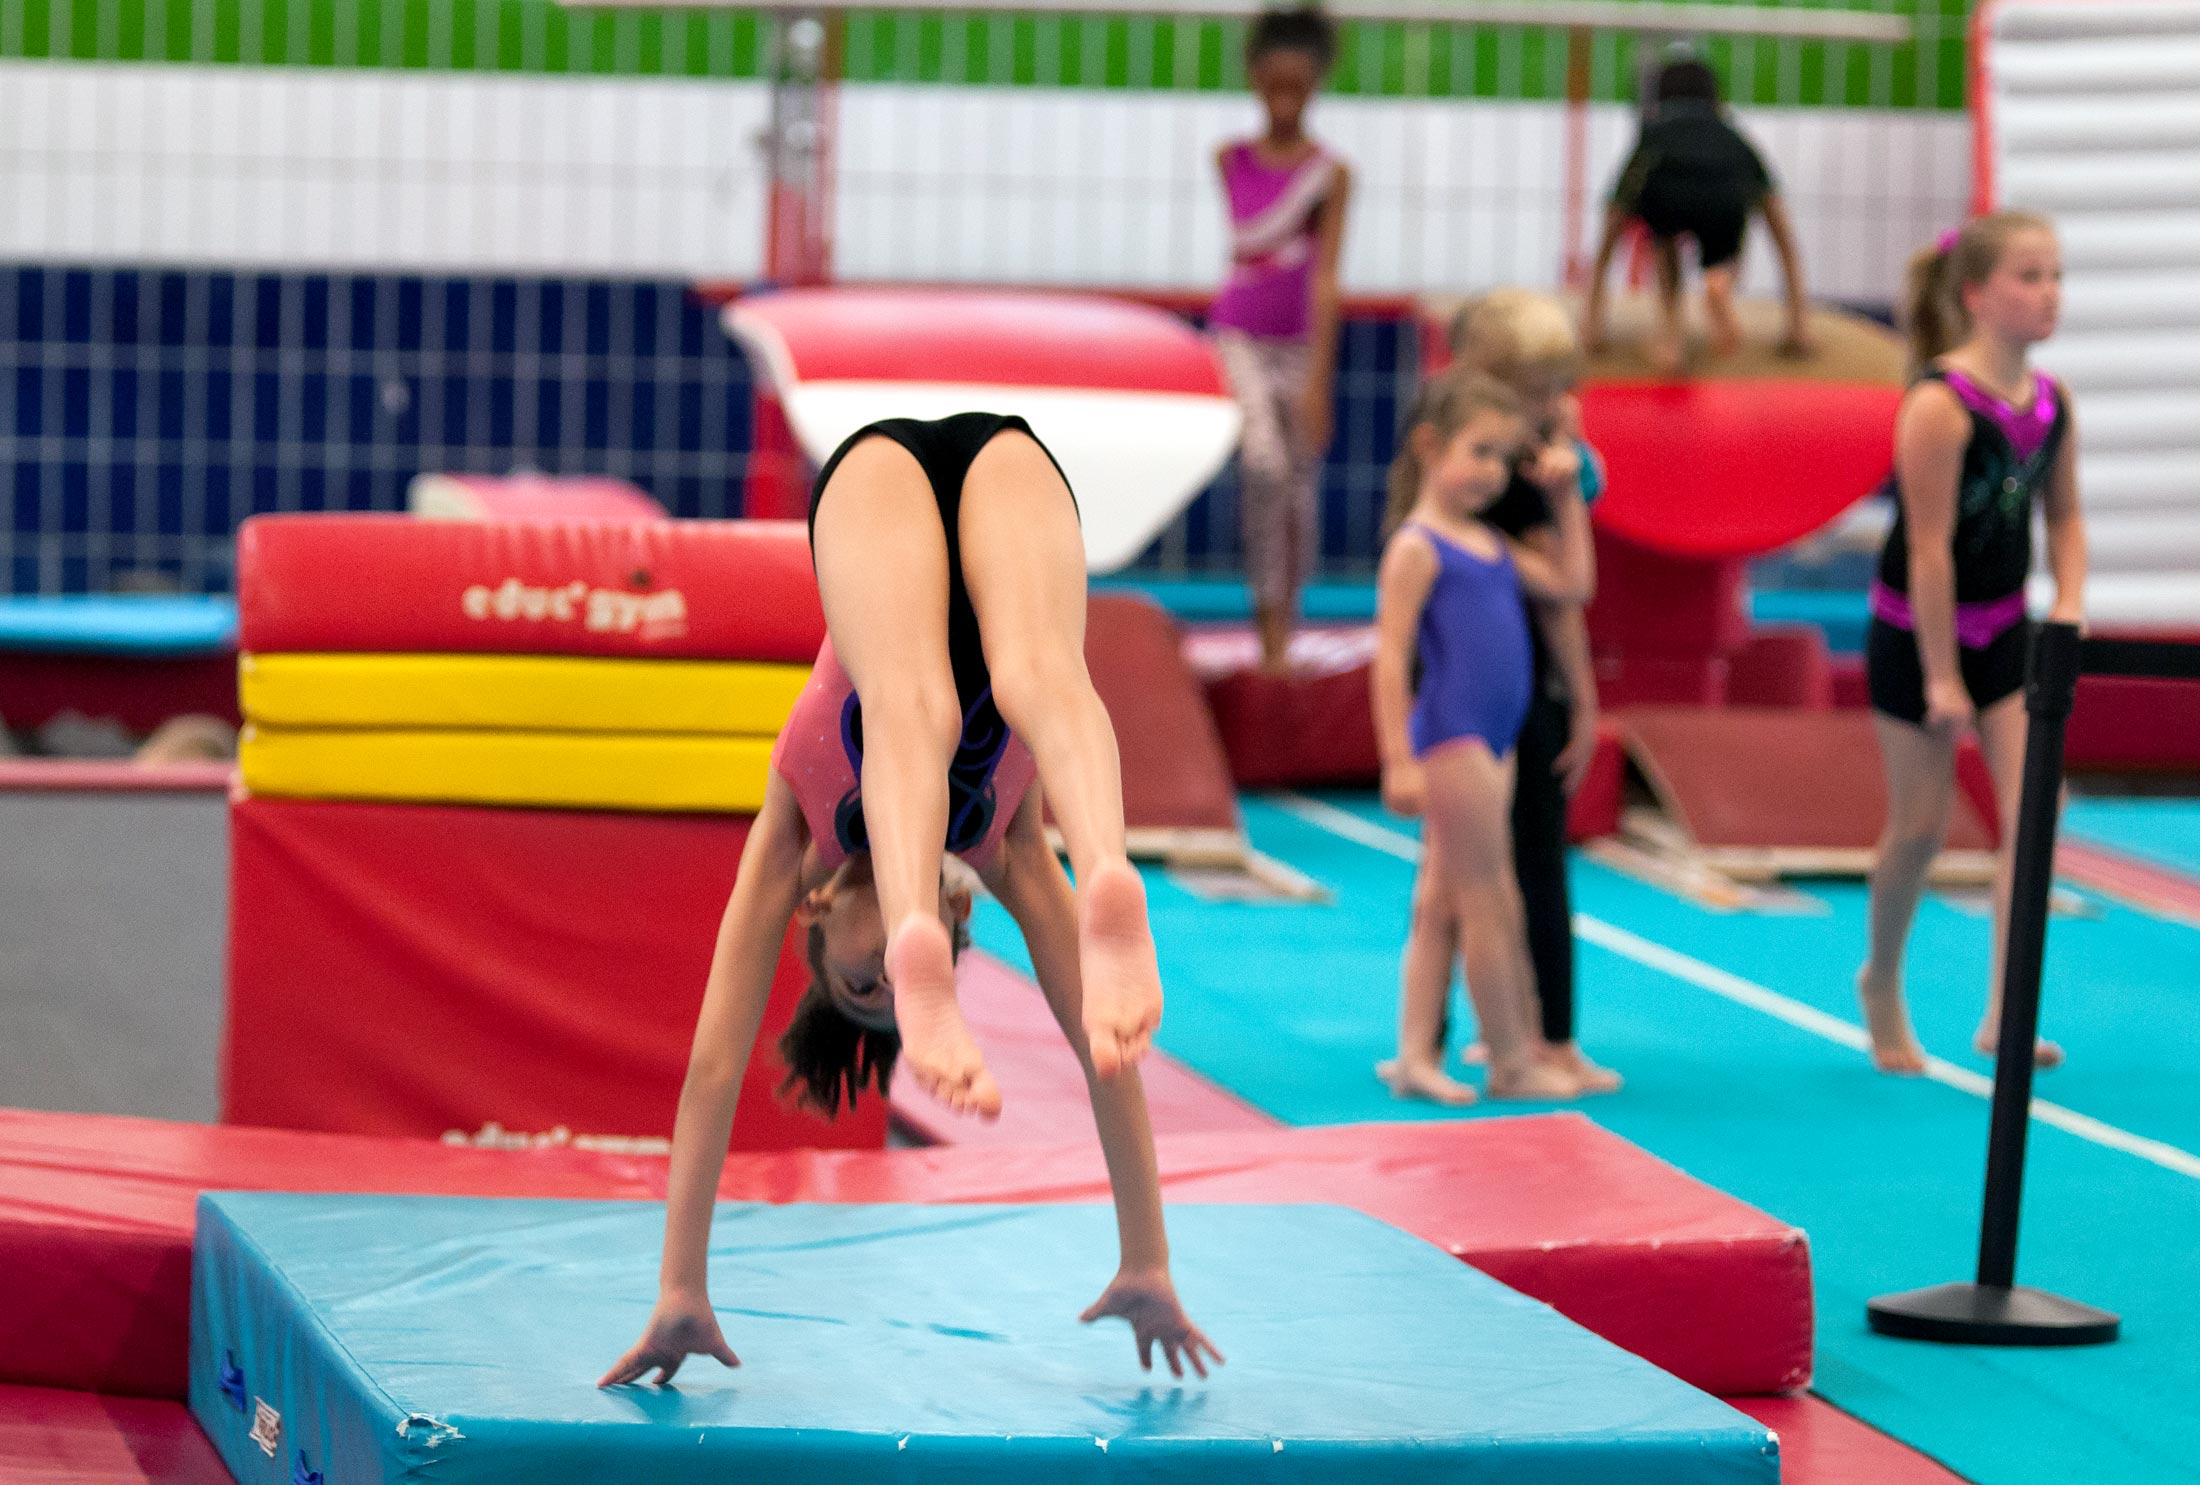 gymnast jumping into forward roll on mat